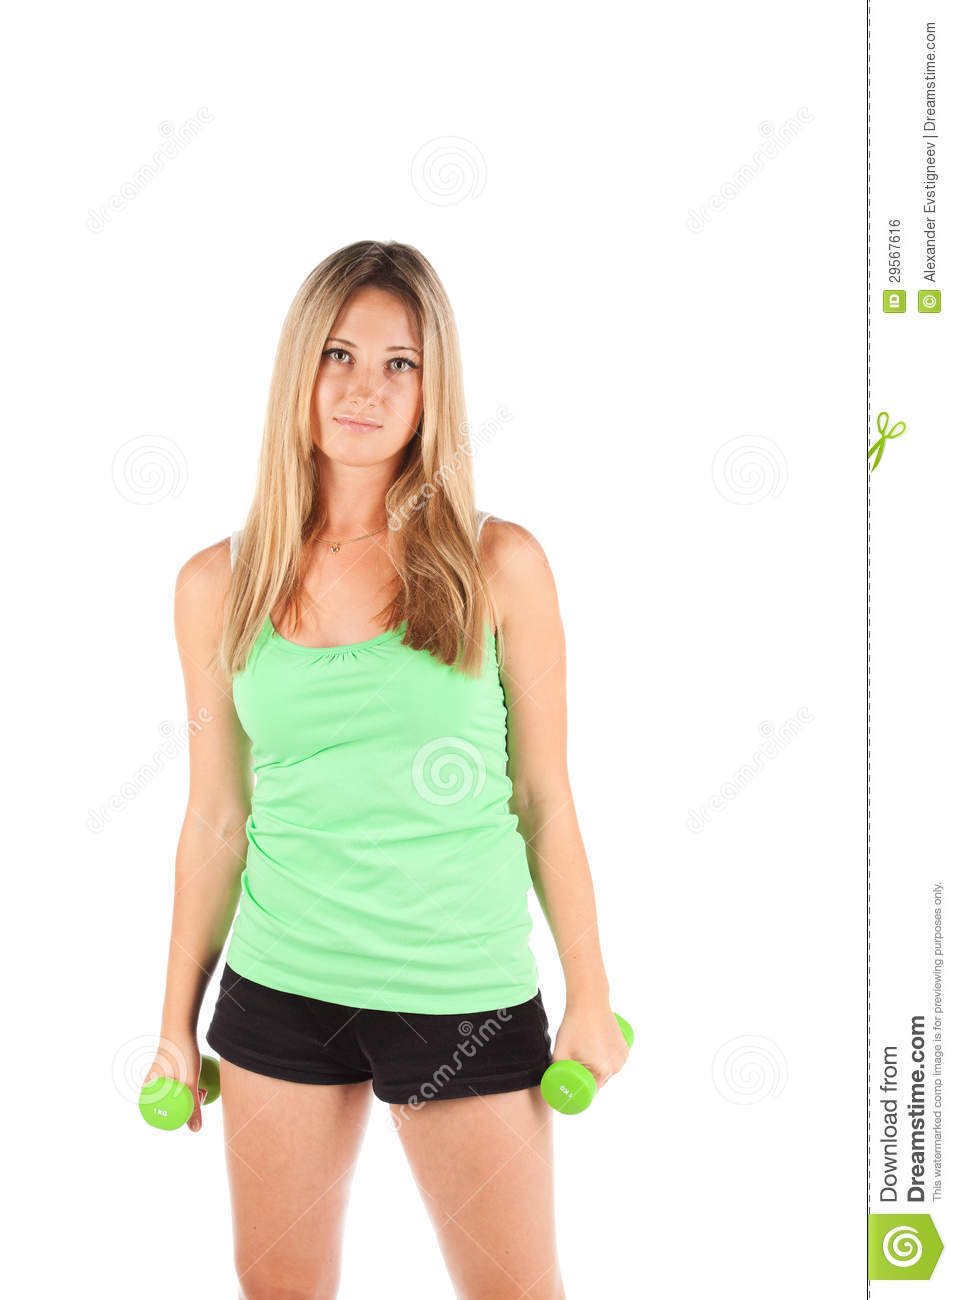 Royalty Free Stock Image: Woman in sports clothes